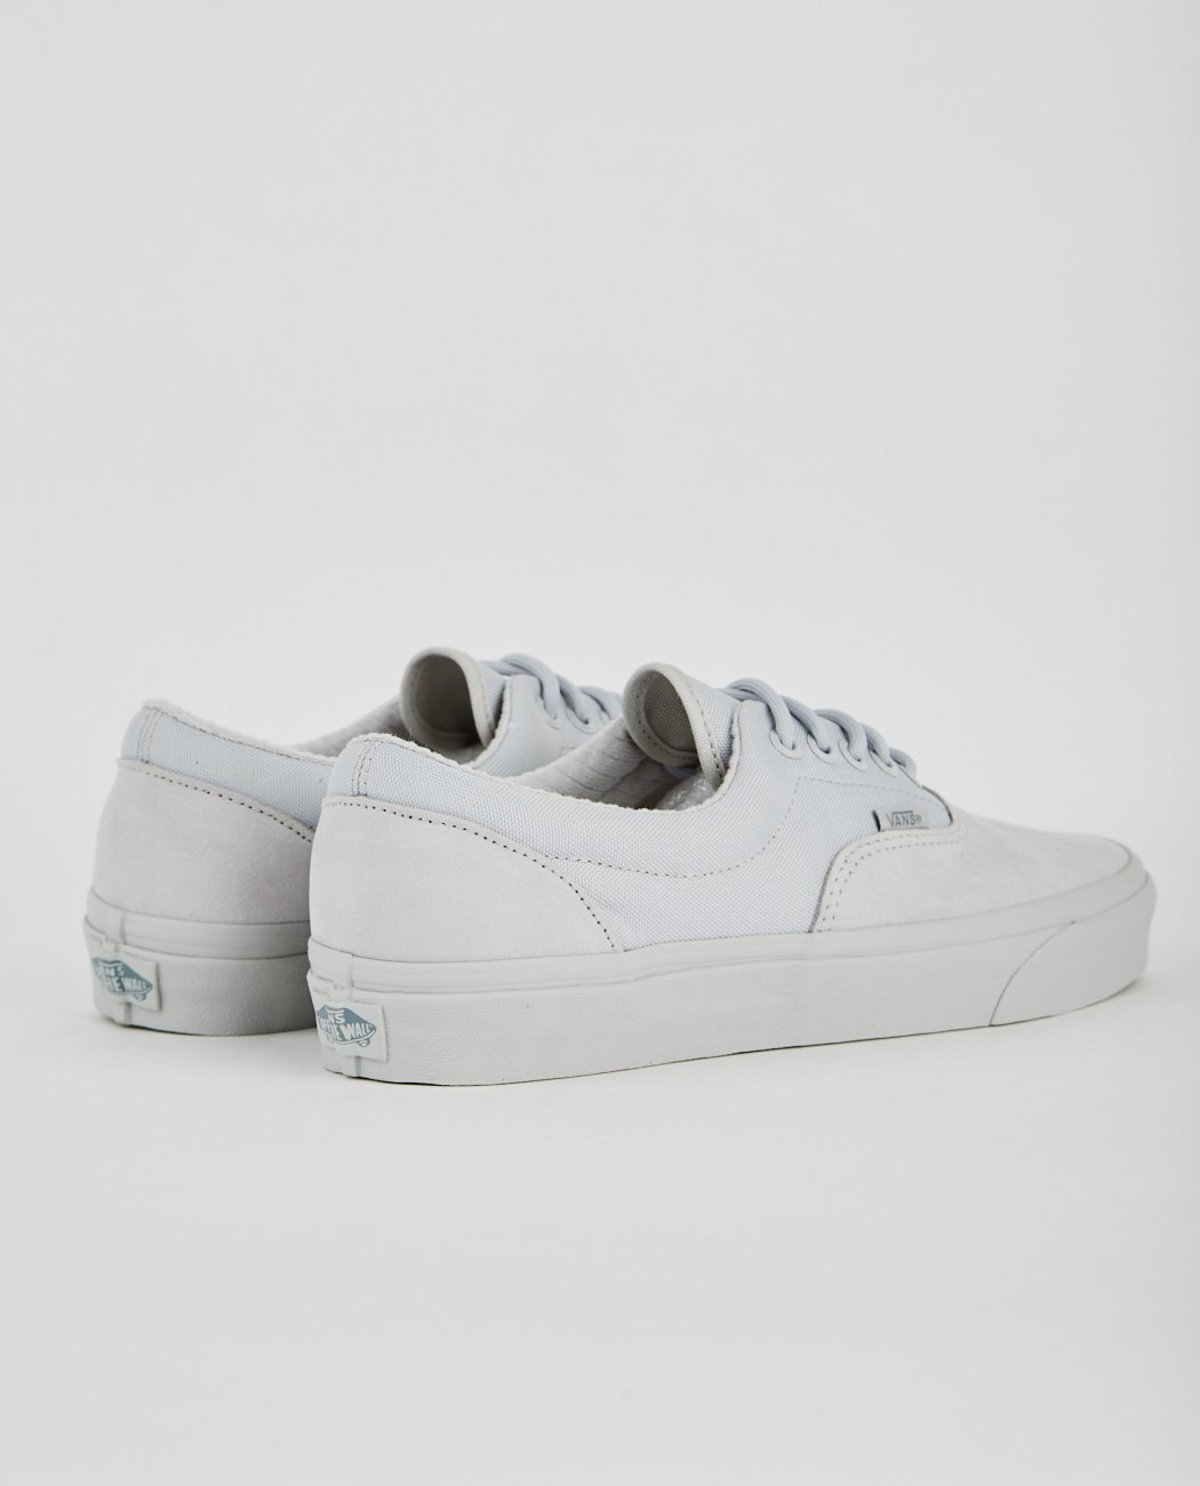 9fd76f8f55 UNISEX VANS ERA MILITARY MONO MICRO CHIP - GREY